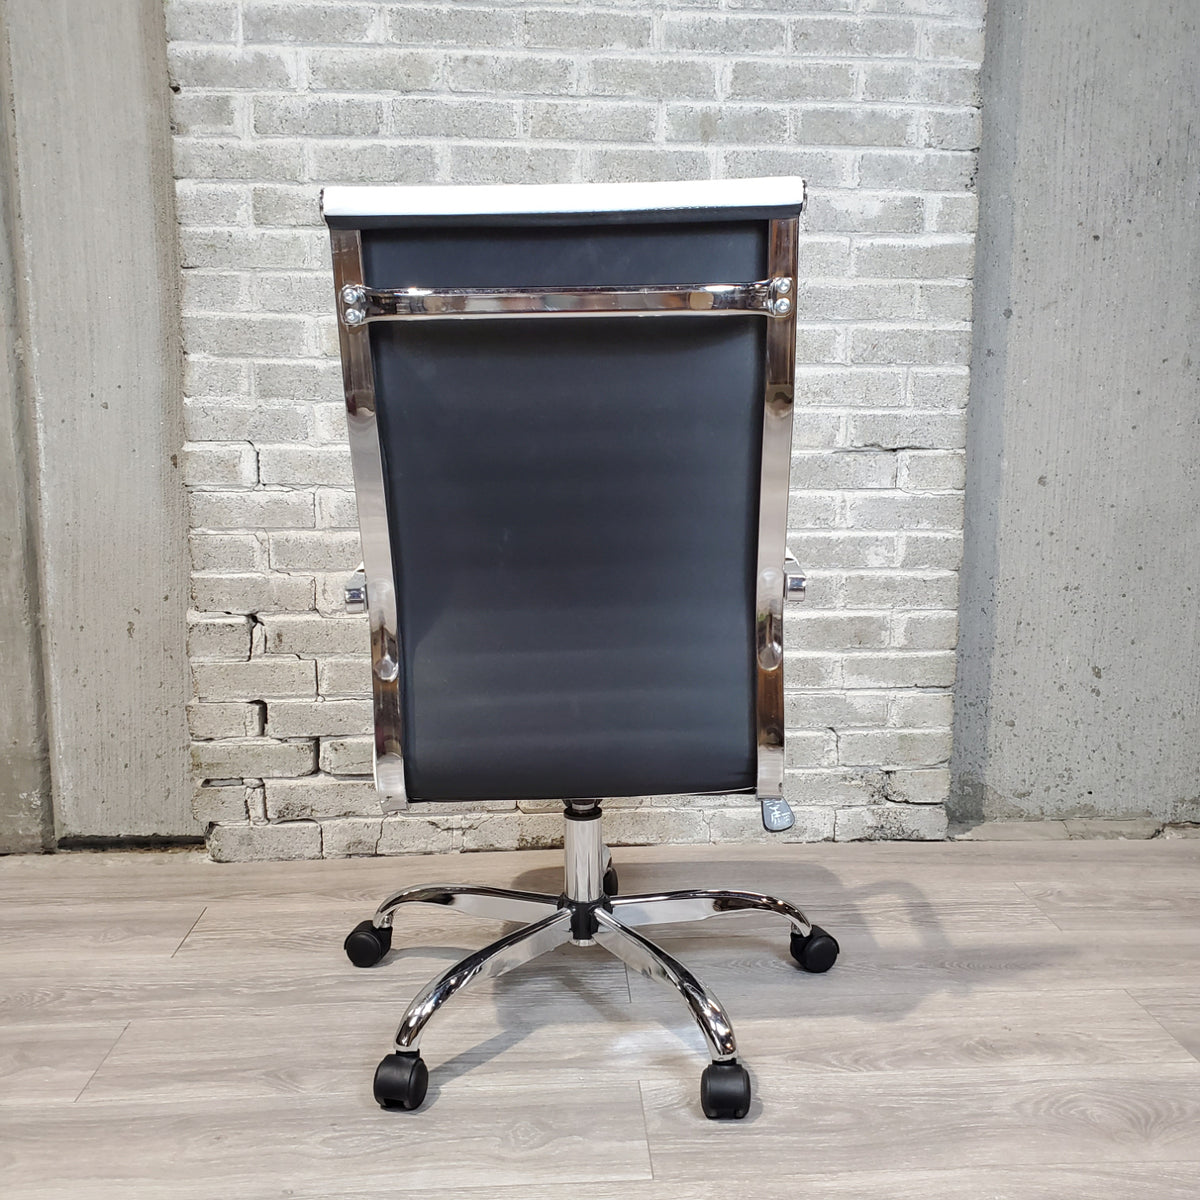 Pre-Owned - Used White Mid-Century Style Office Chair - Duckys Office Furniture